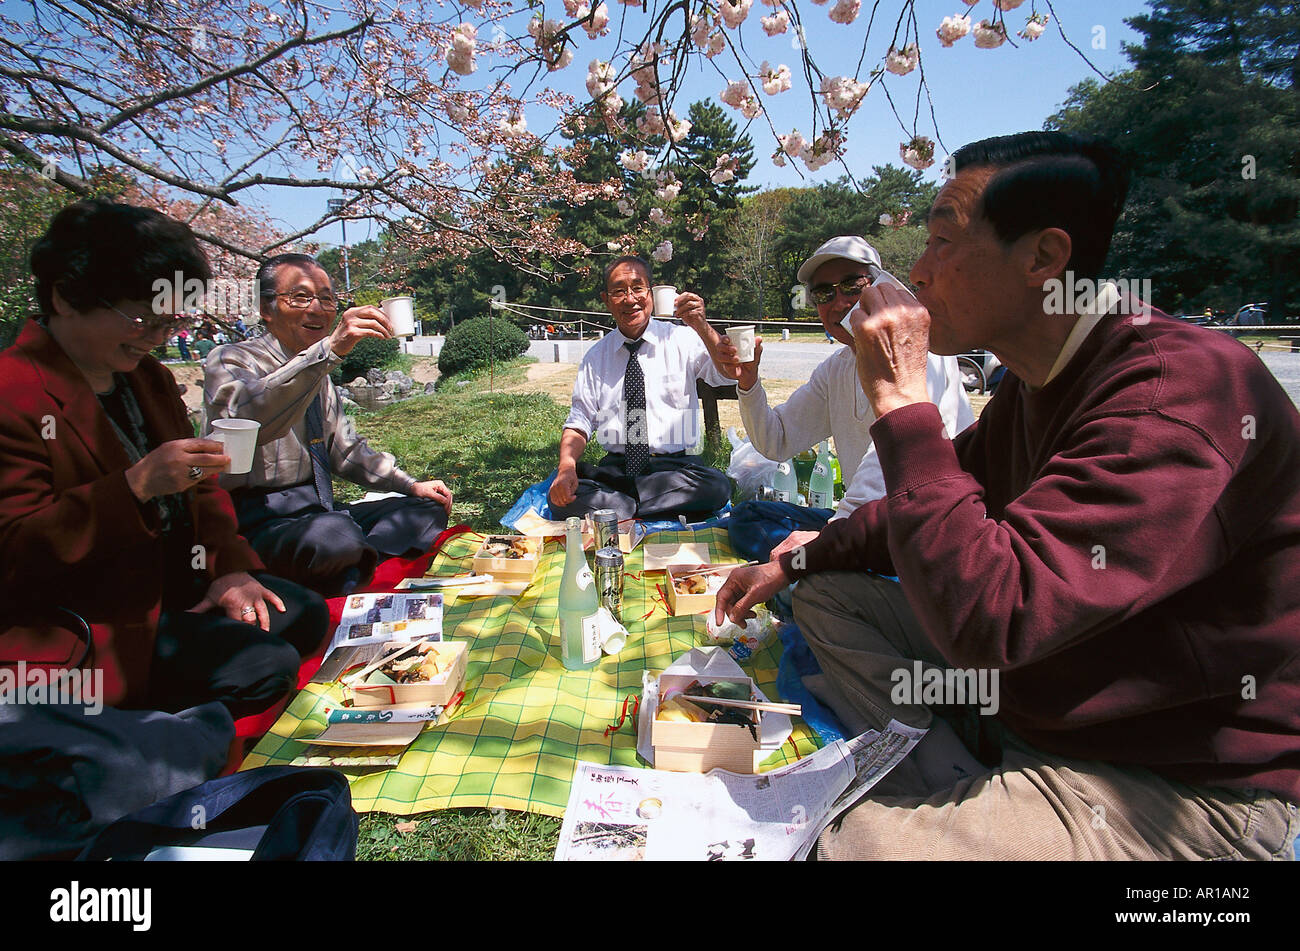 Picnic, Cherry Blossom celebration, Imperial Palace Park, Kyoto, Japan, Asia - Stock Image